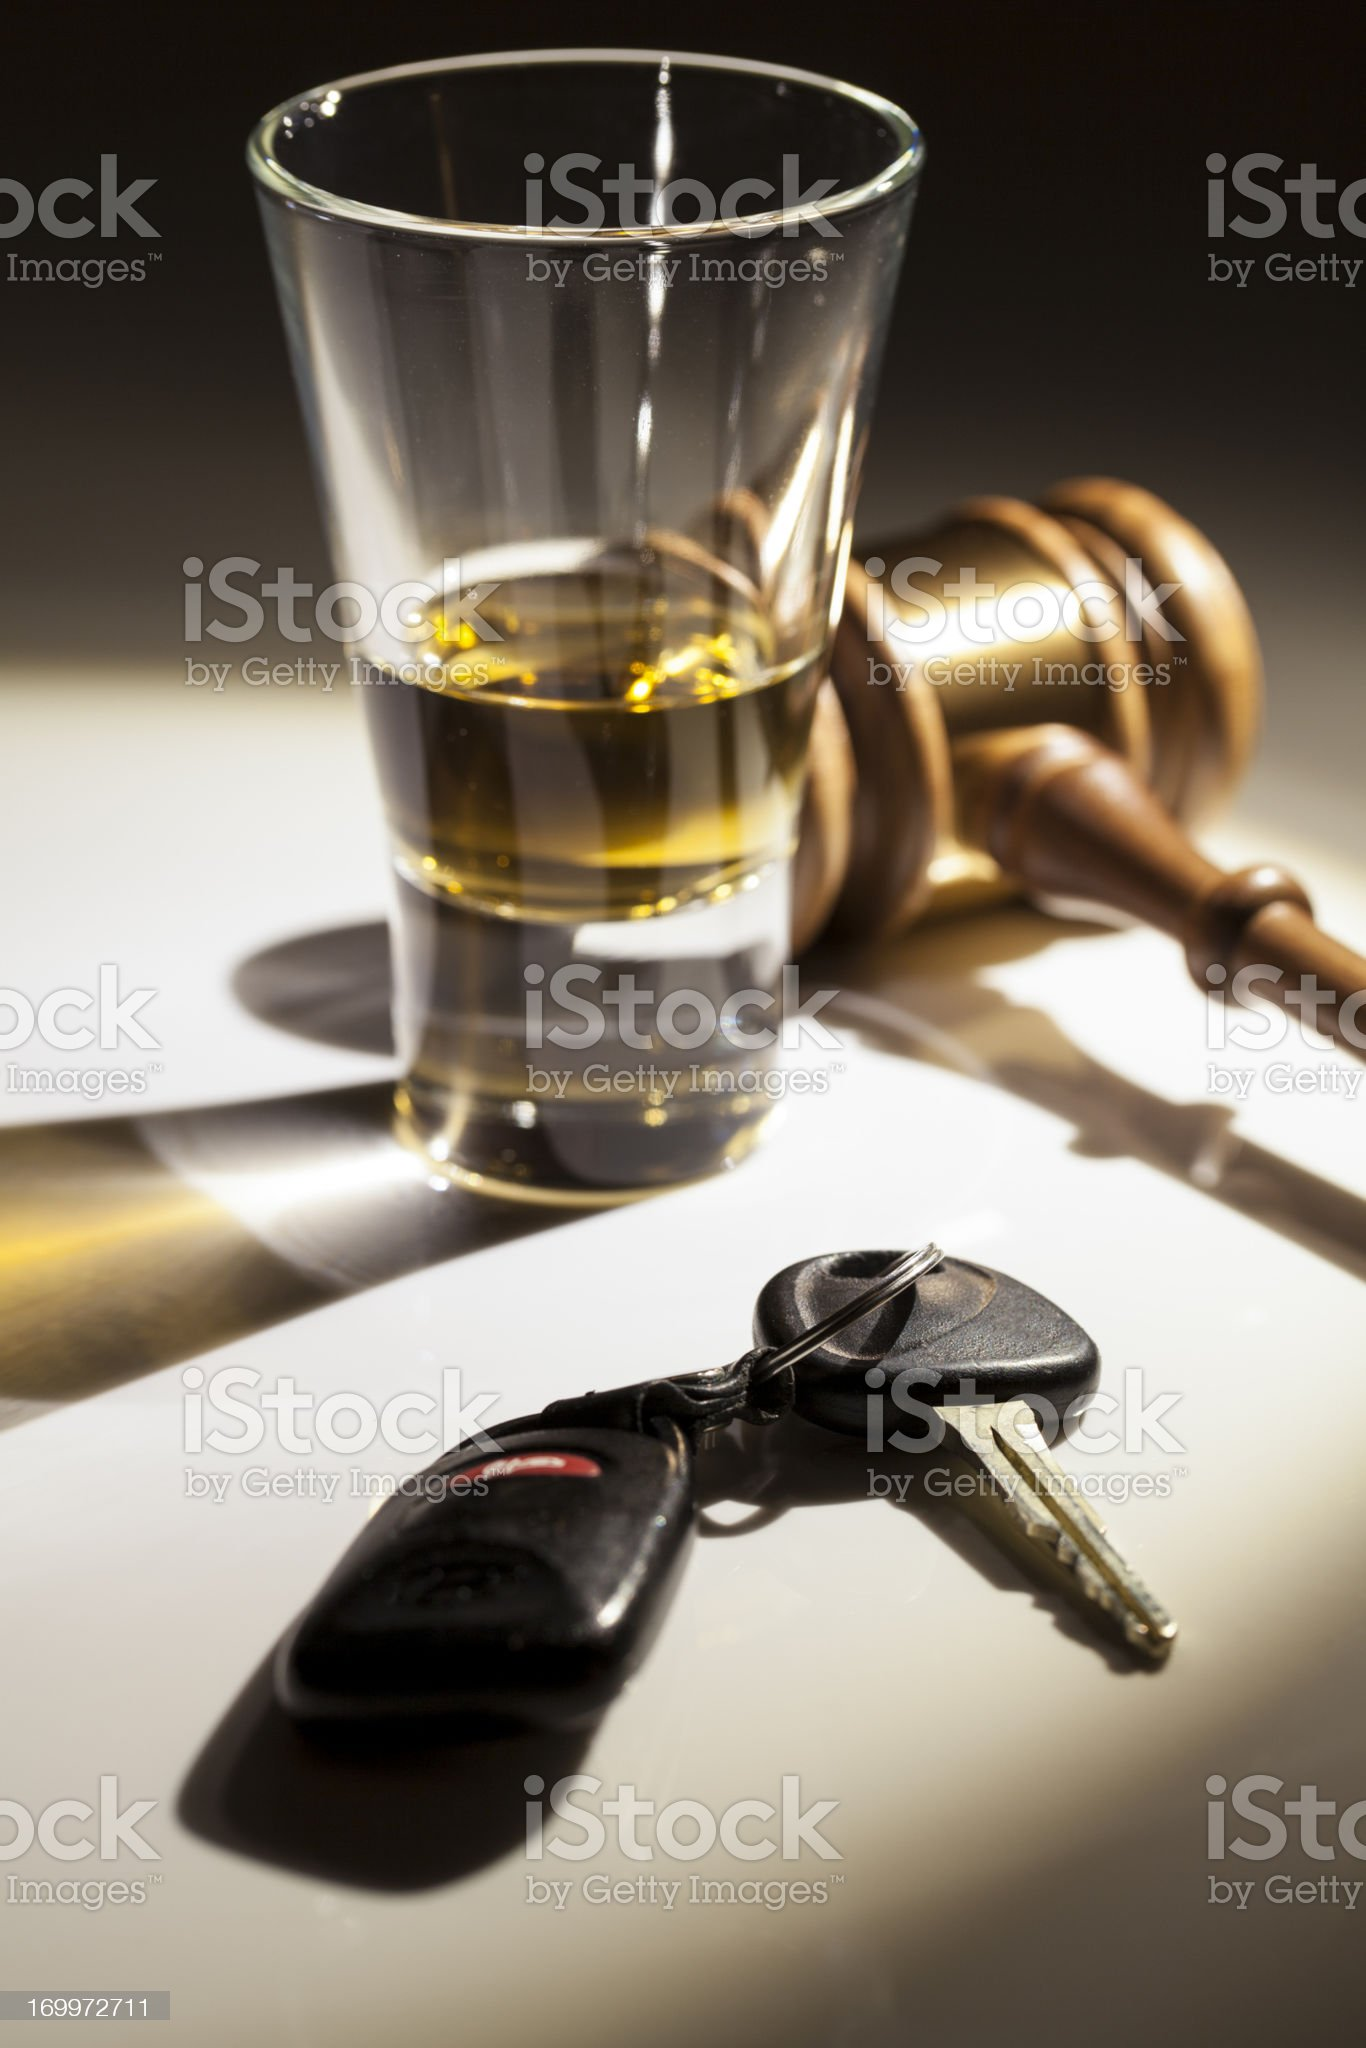 Drunken Driving royalty-free stock photo